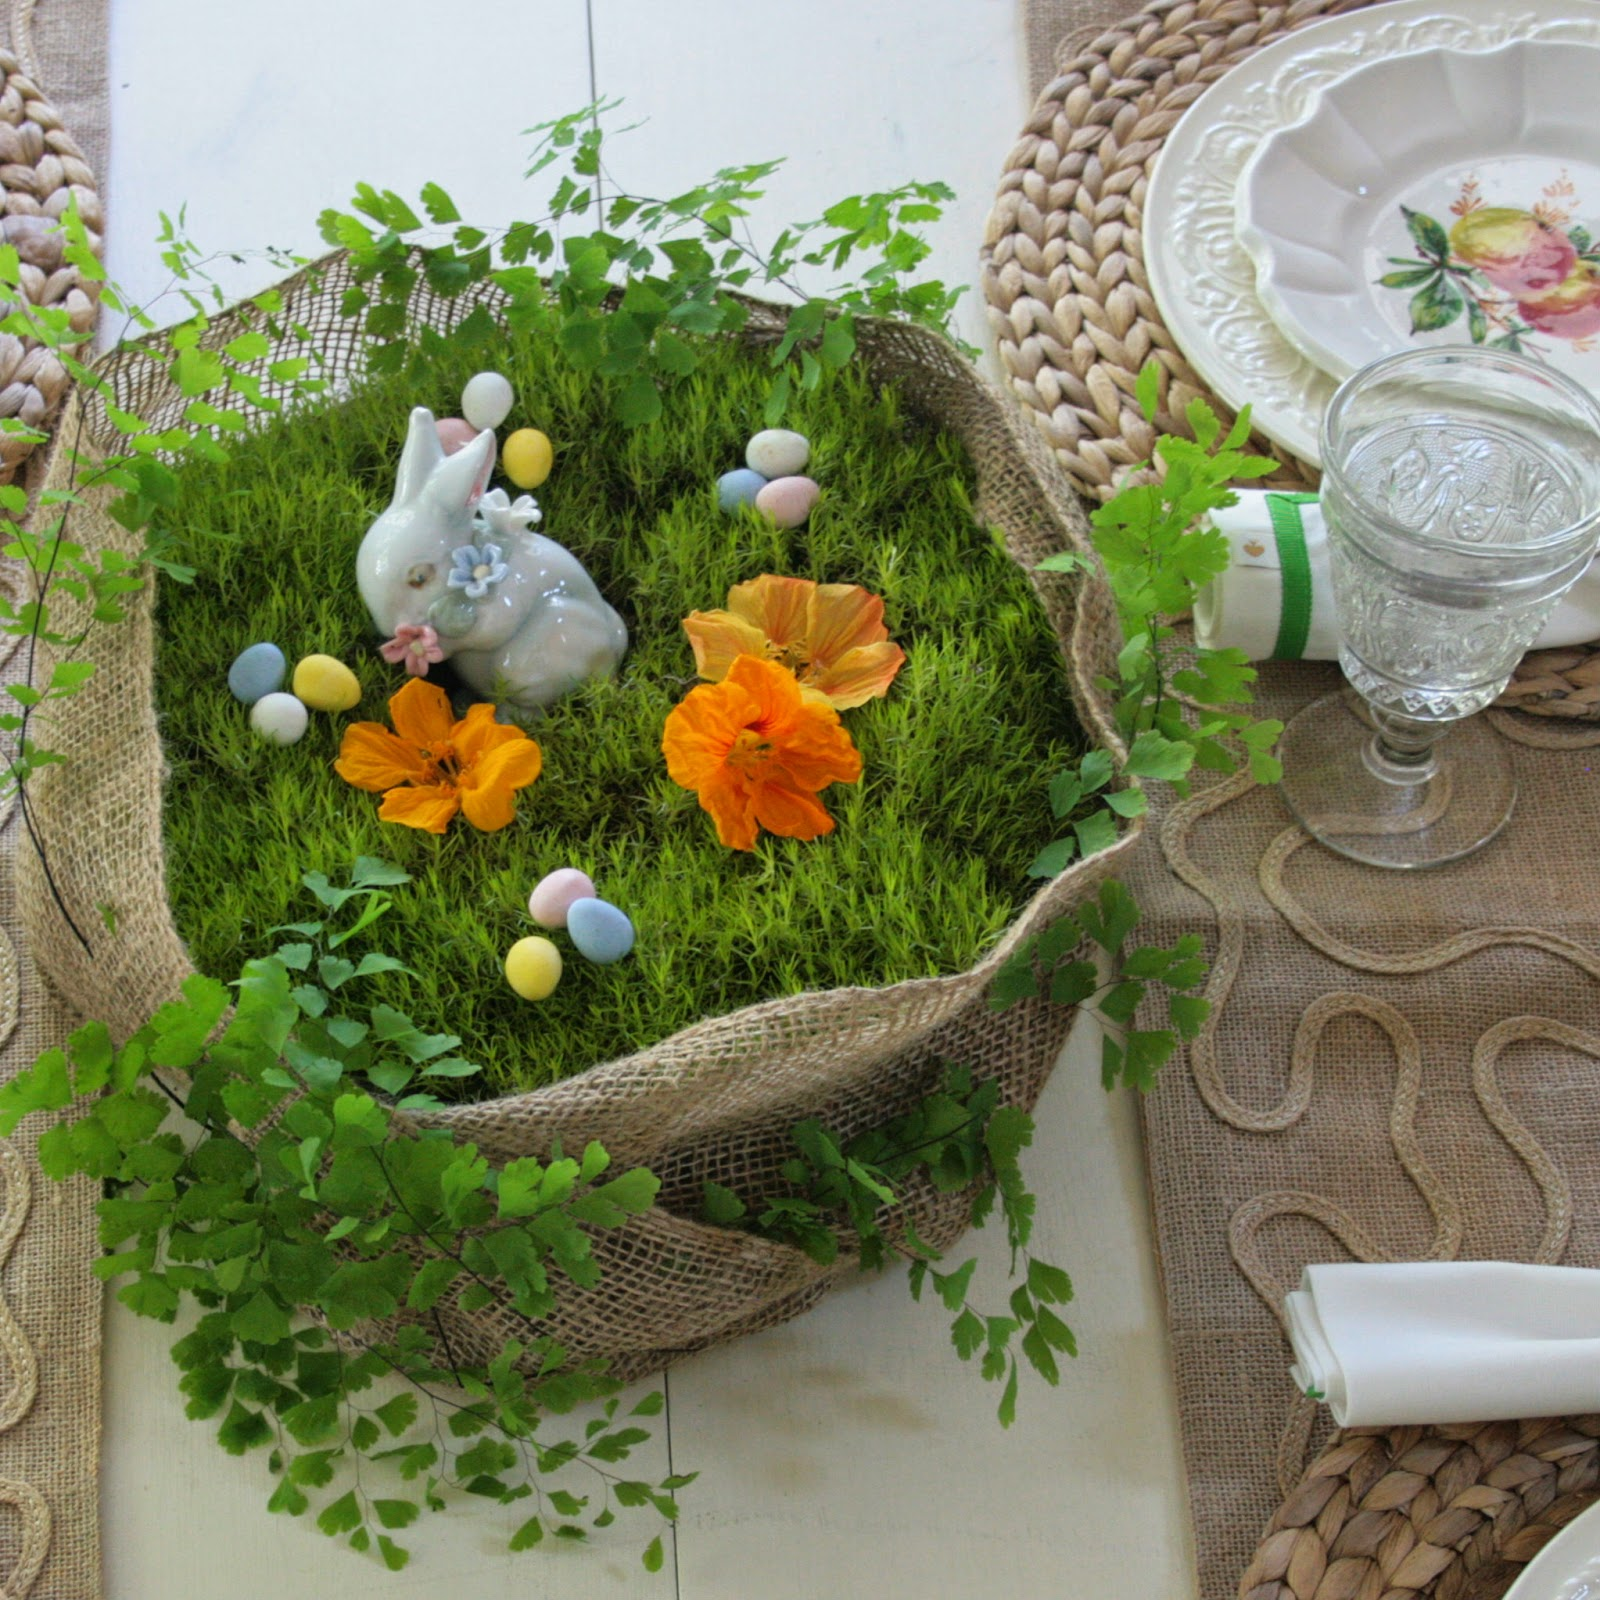 I Just Finished A Simple Moss And Fern Centerpiece For My Easter Table. My  Italian Fruit Dessert Plates Were My Starting Point For The Table, And I  Knew The ...